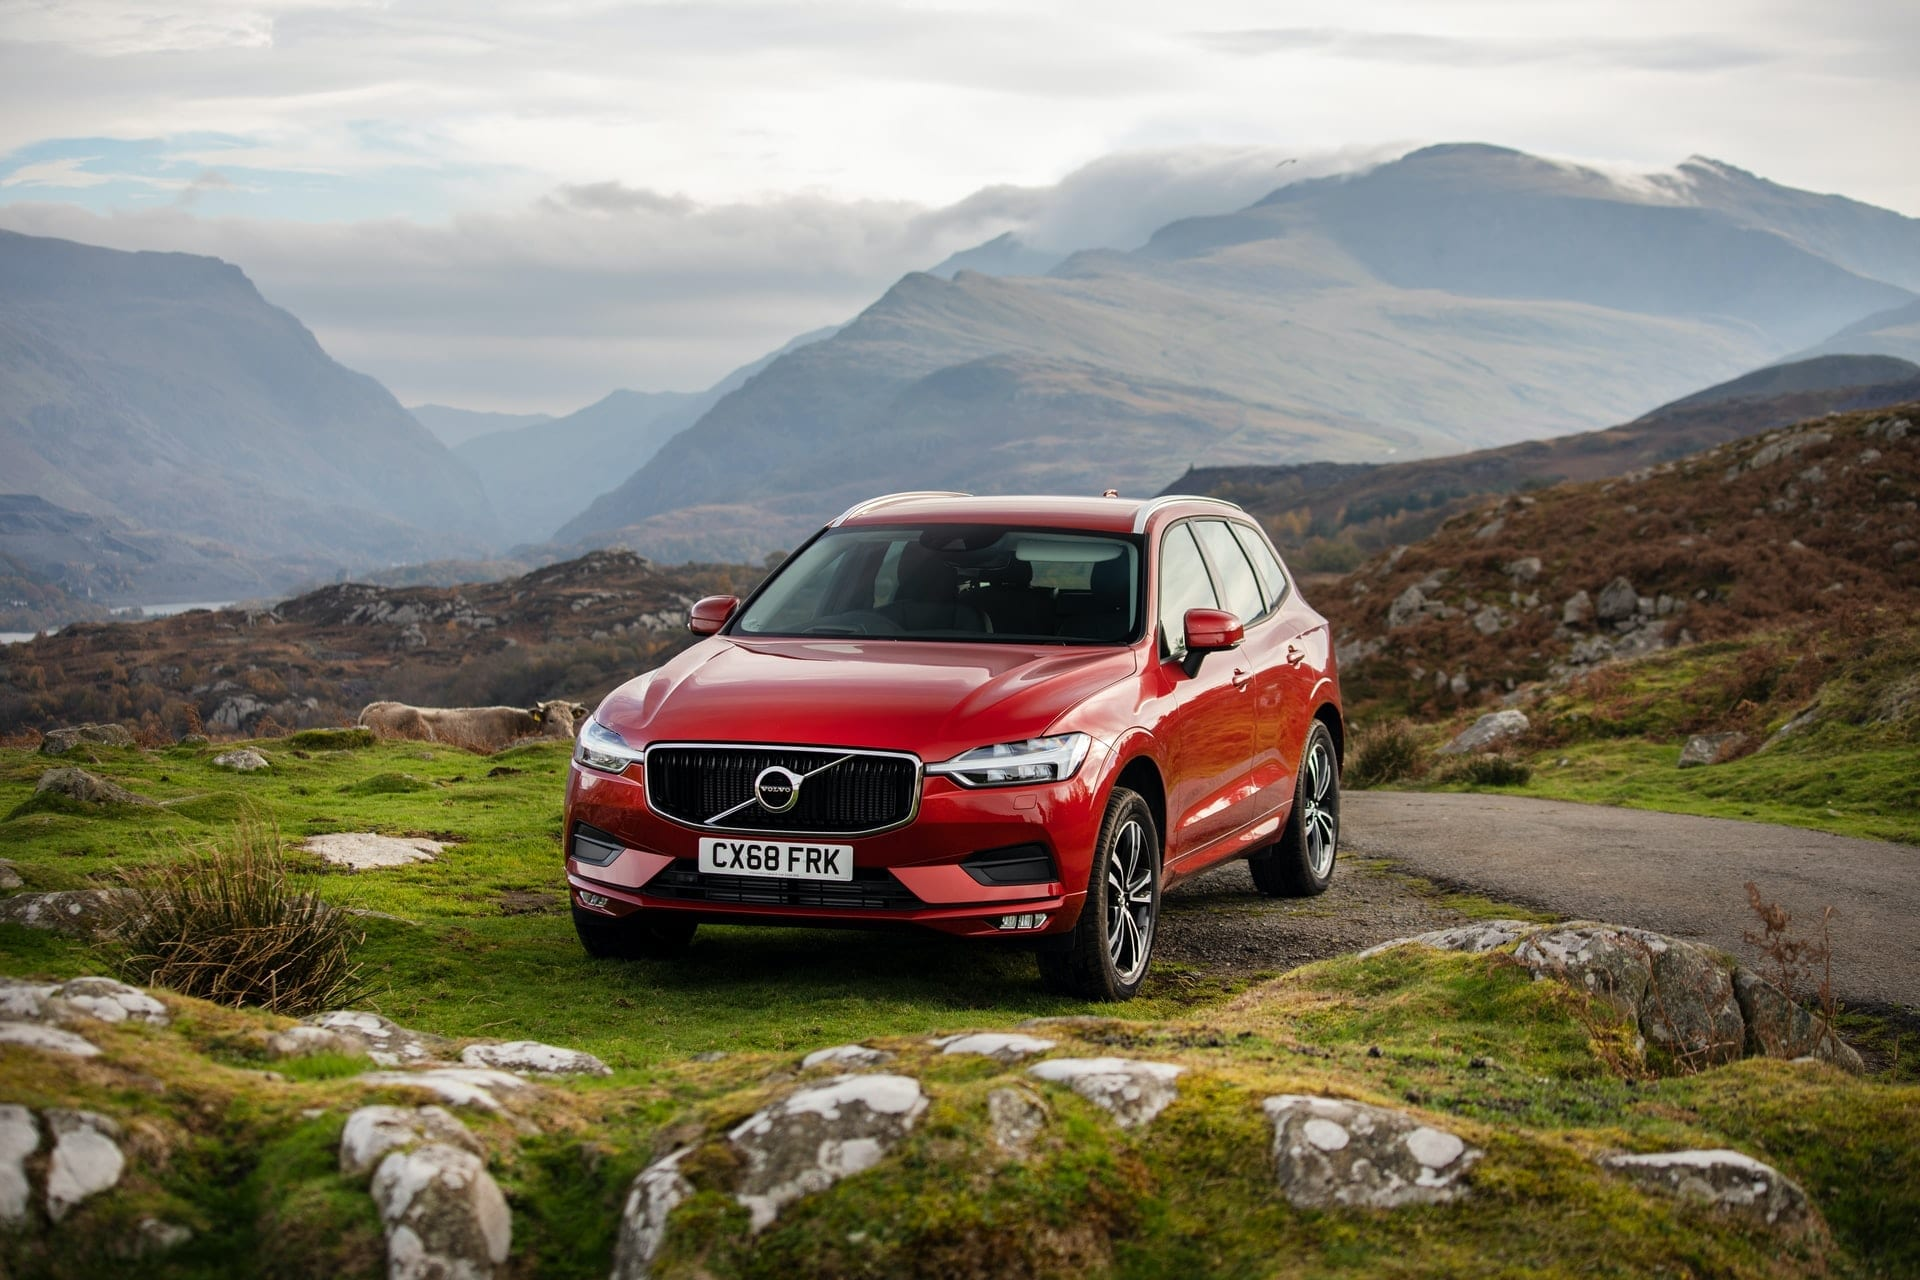 red-volvo-pulled-up-to-side-of-road-in-the-mountains-brecon-beacons-snowdonia-wales-best-scenic-drives-in-uk